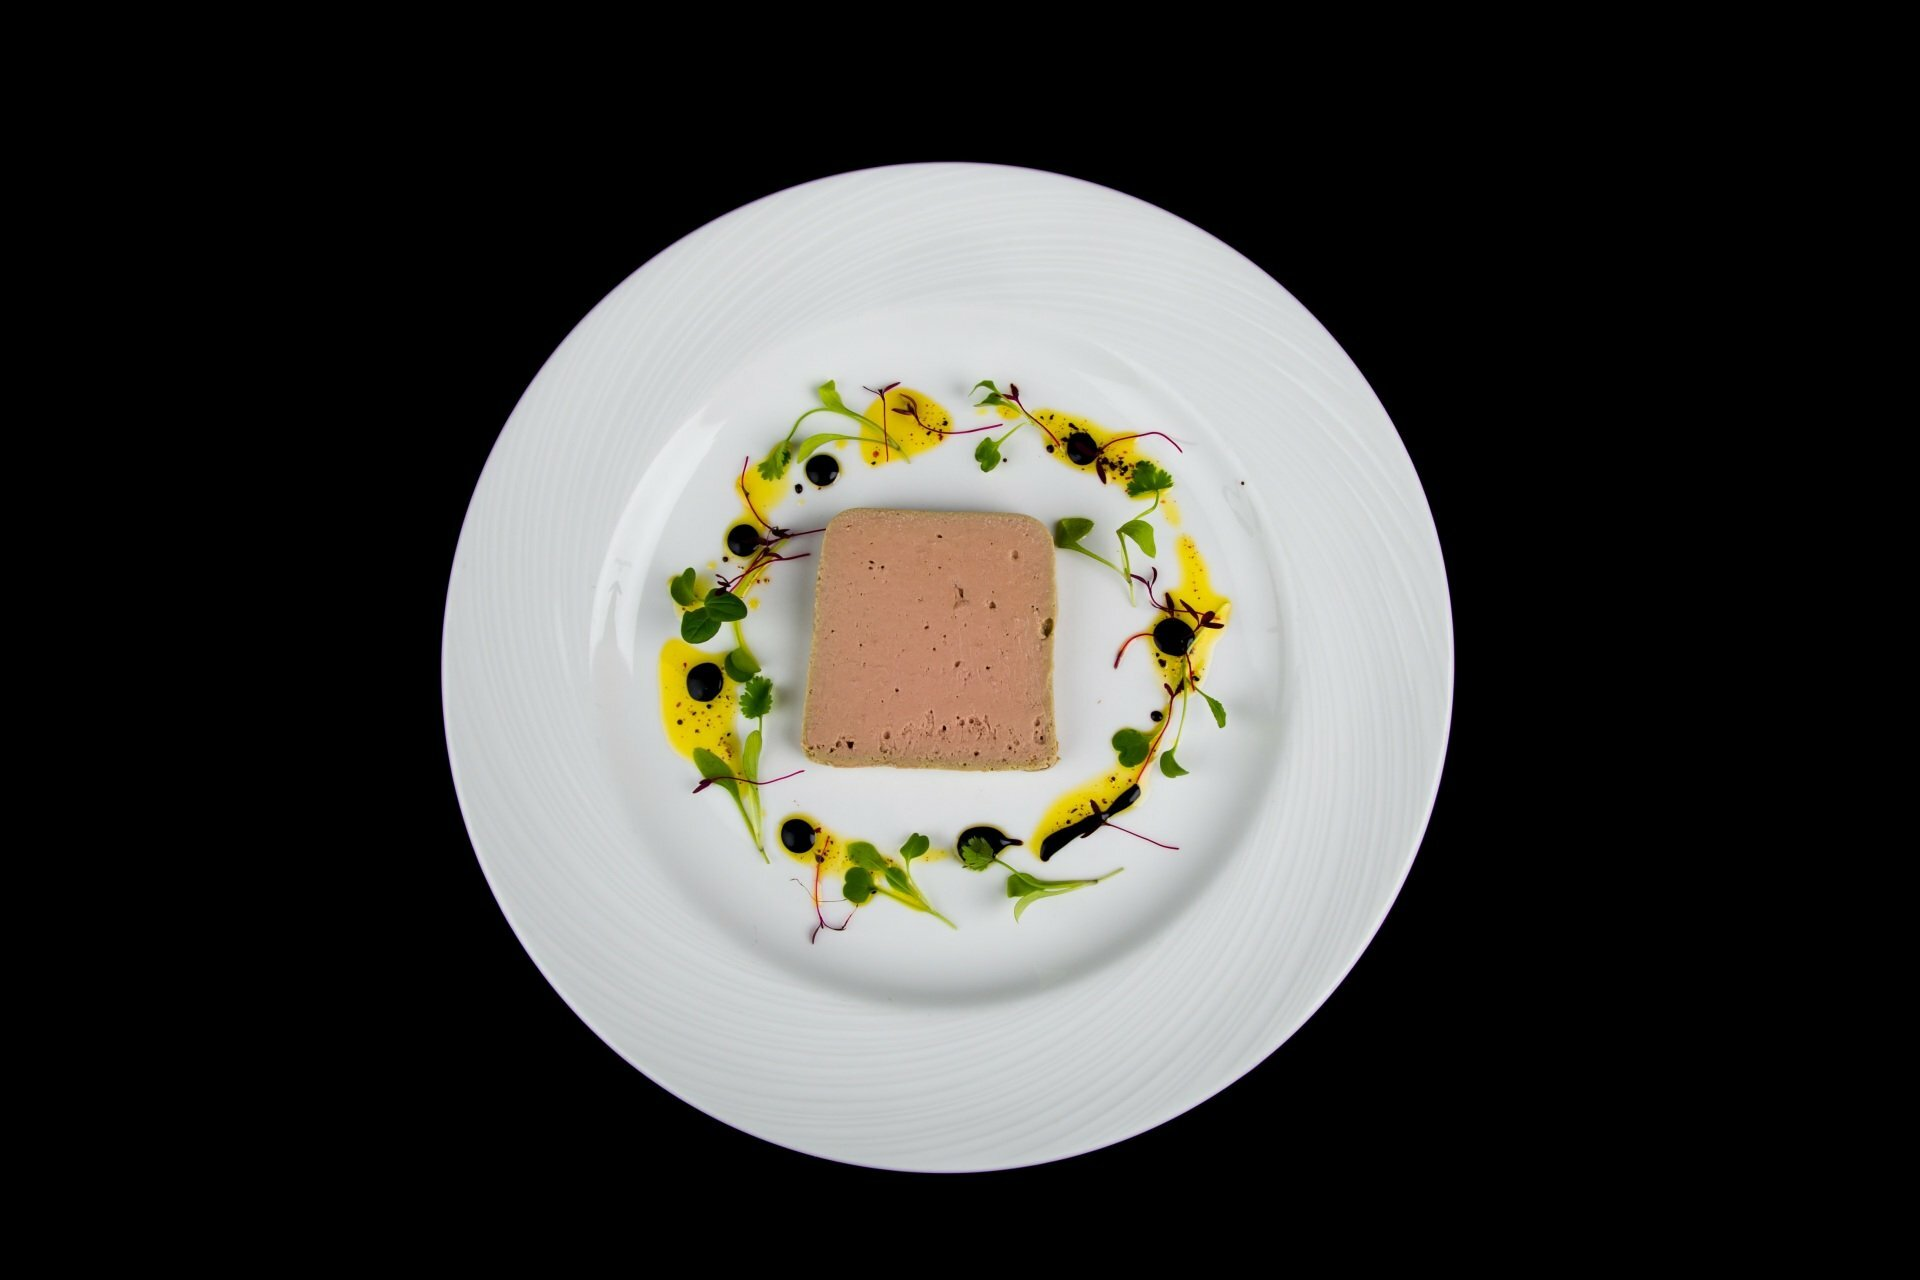 CHICKEN LIVER PARFAIT ON PLATE WITH DRESSING